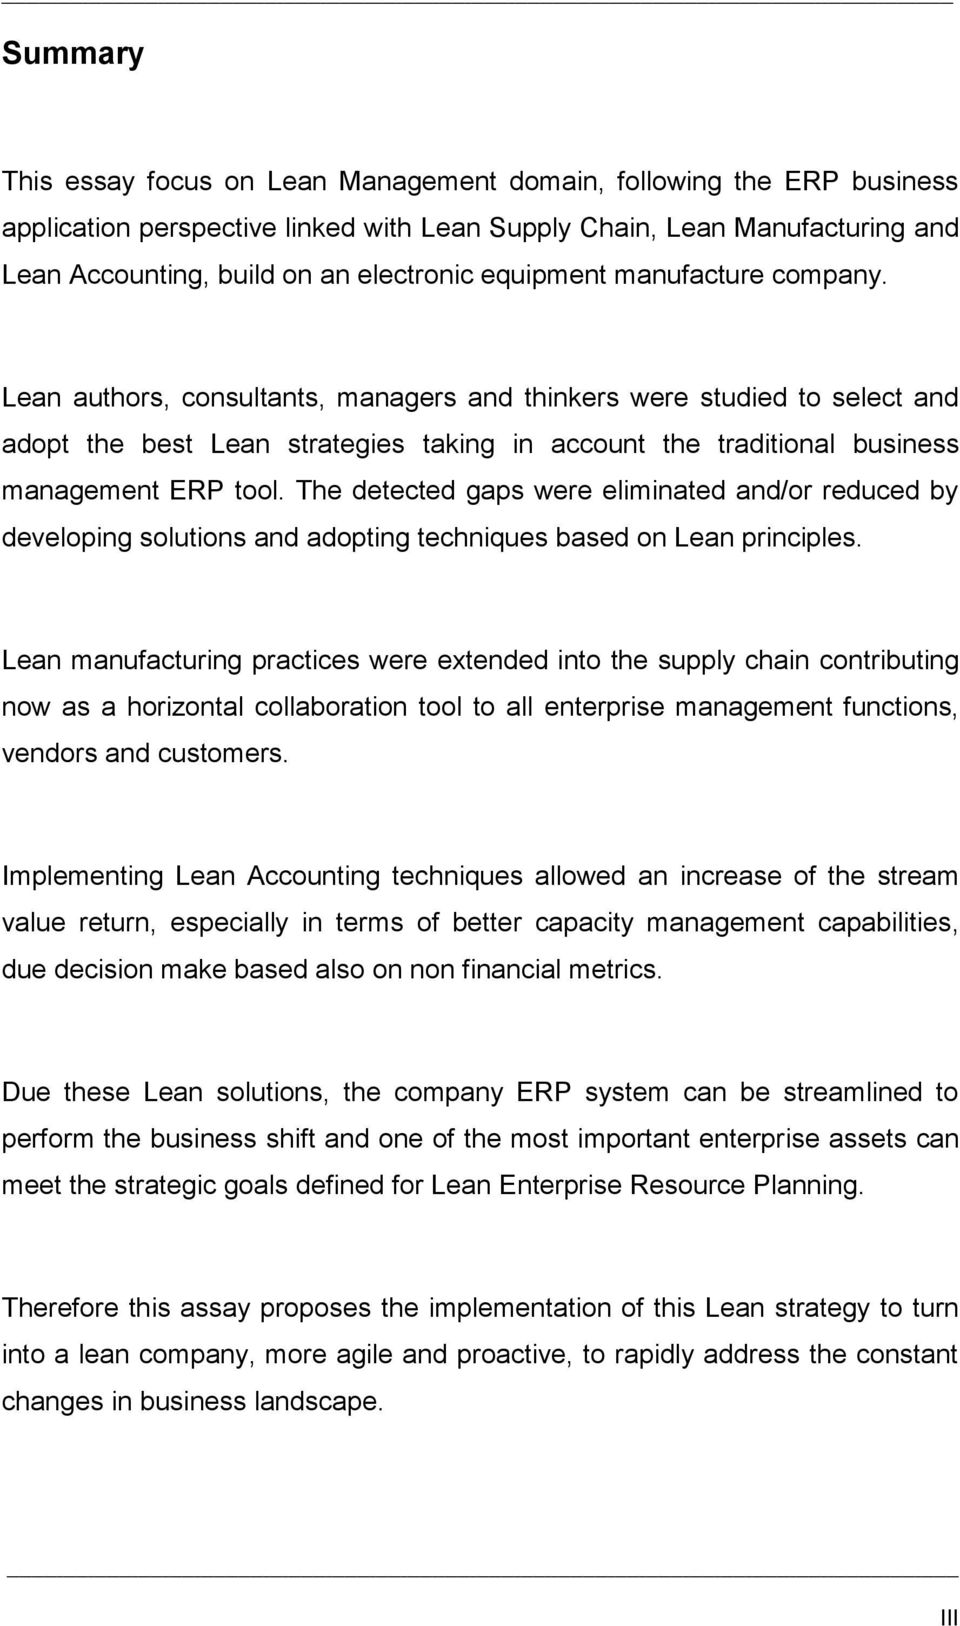 Lean authors, consultants, managers and thinkers were studied to select and adopt the best Lean strategies taking in account the traditional business management ERP tool.